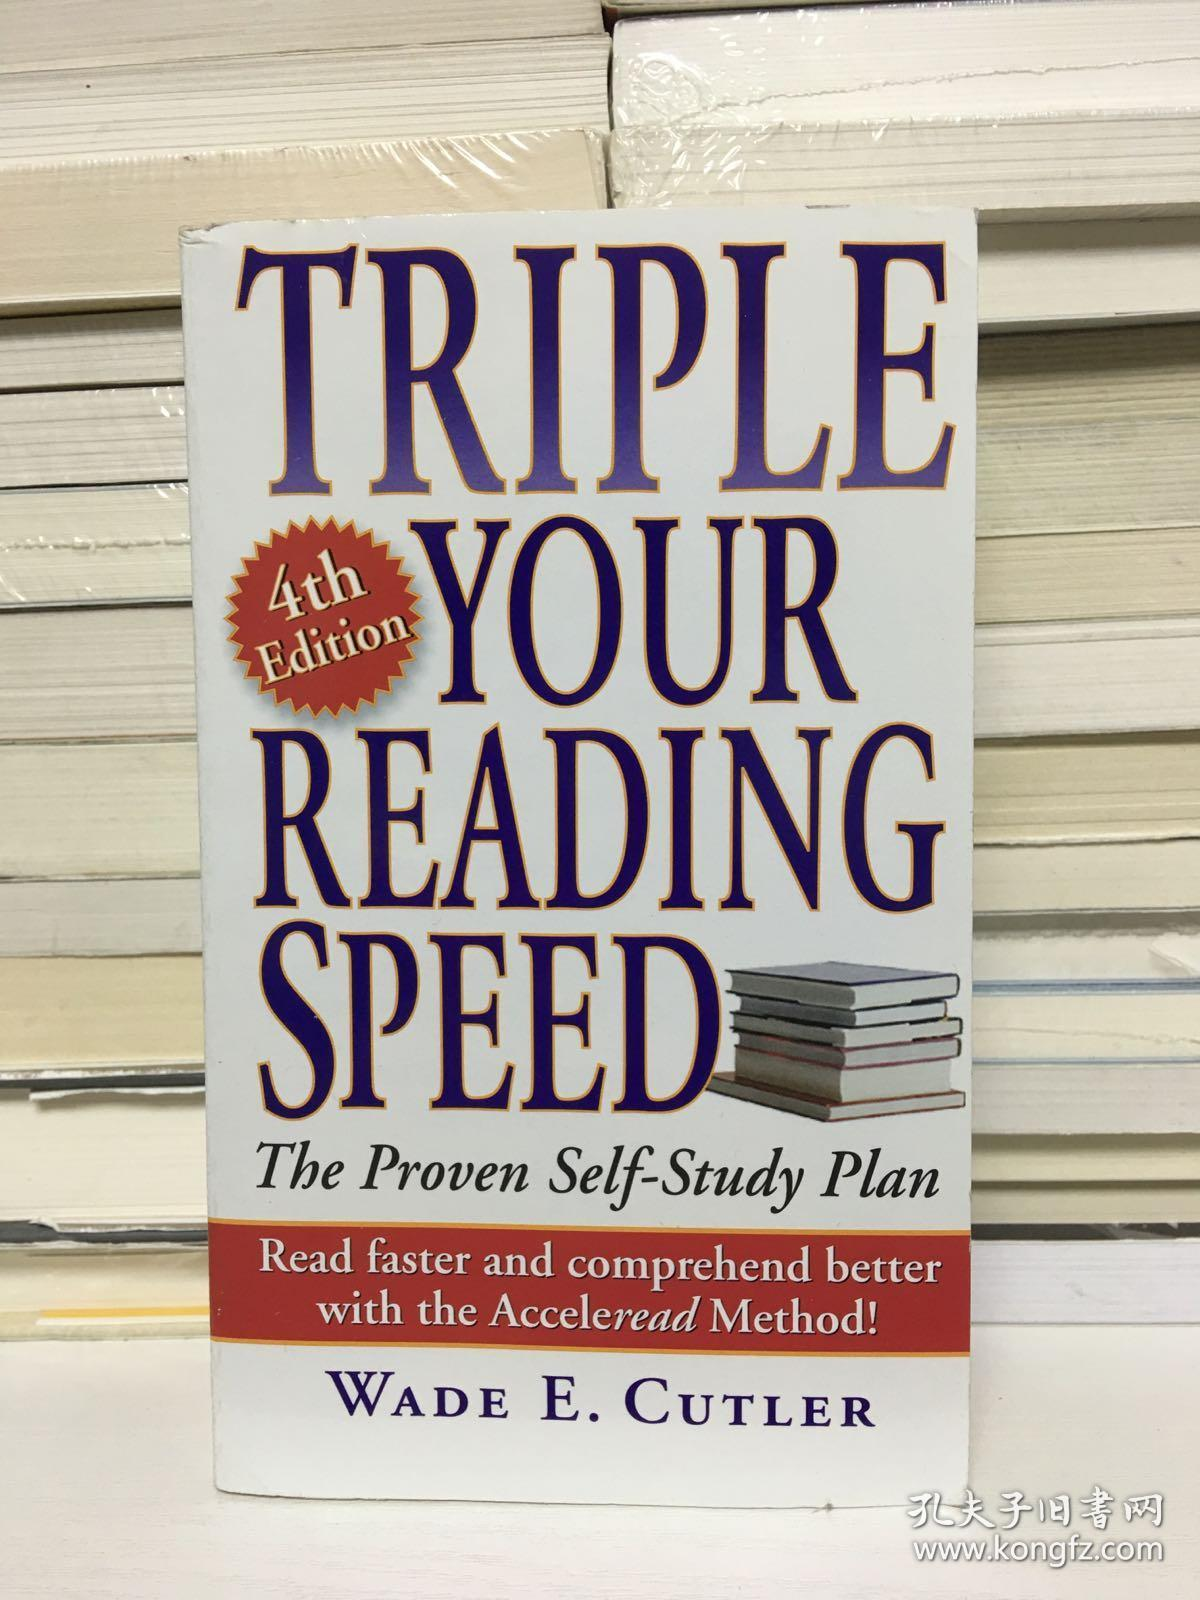 Triple Your Reading Speed:4th Edition